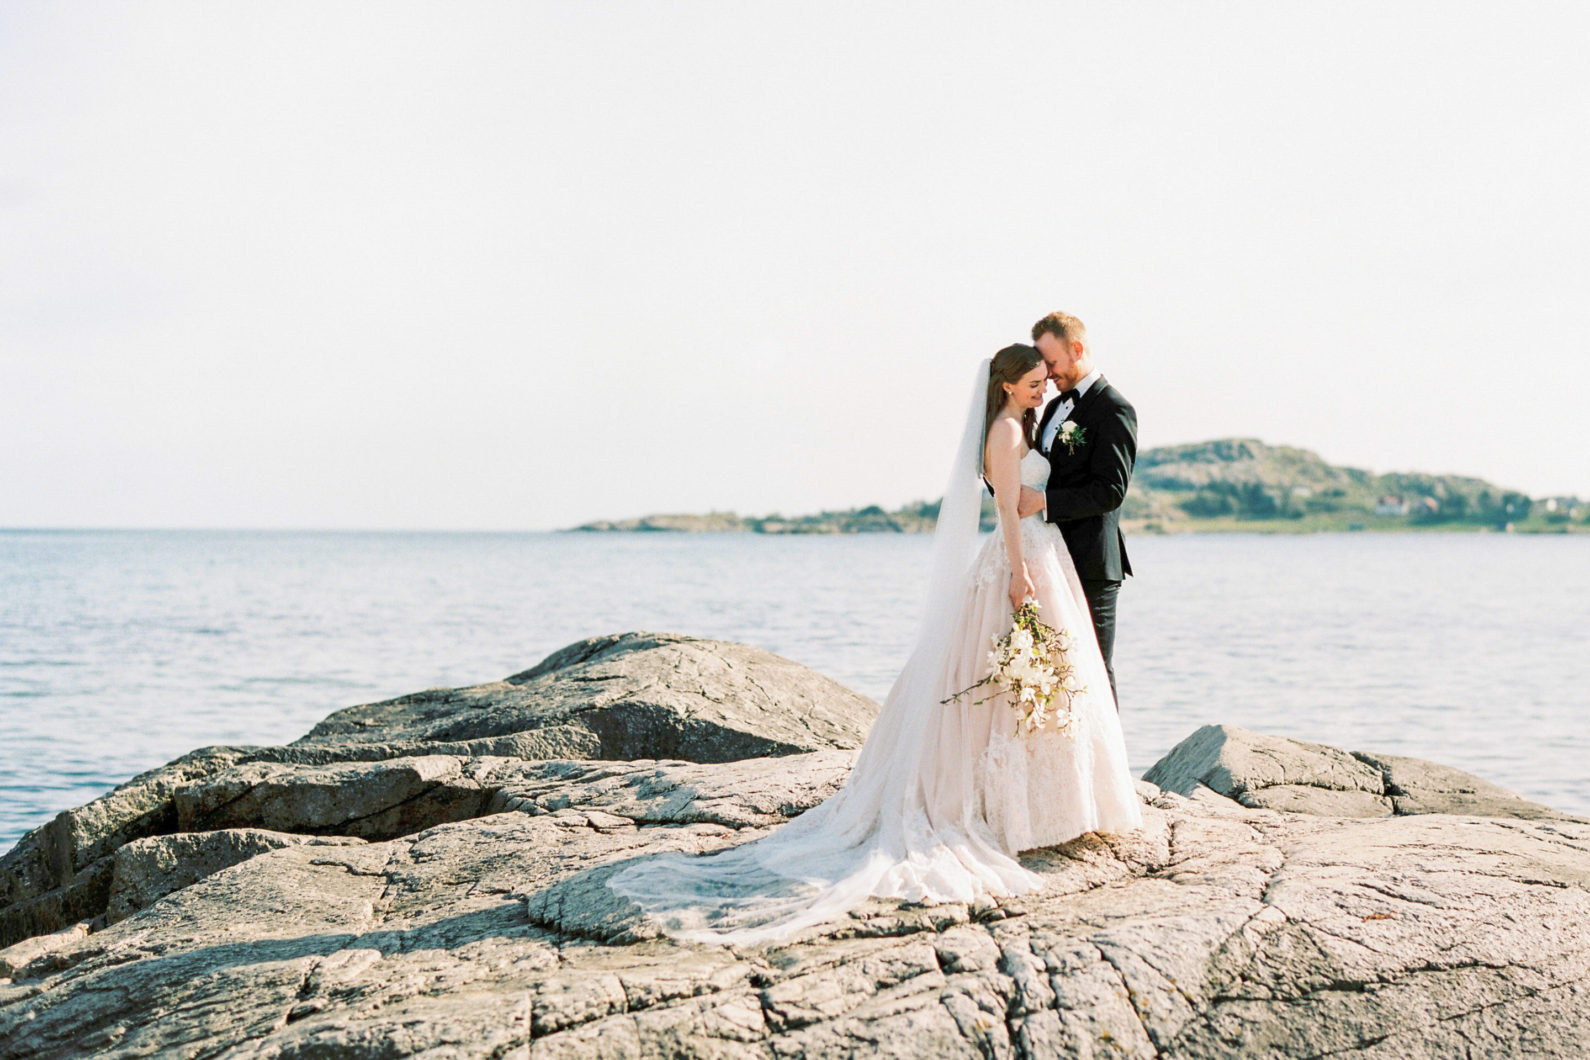 Fotograf-Eline-Jacobine-beach-wedding-destination-1-6-1